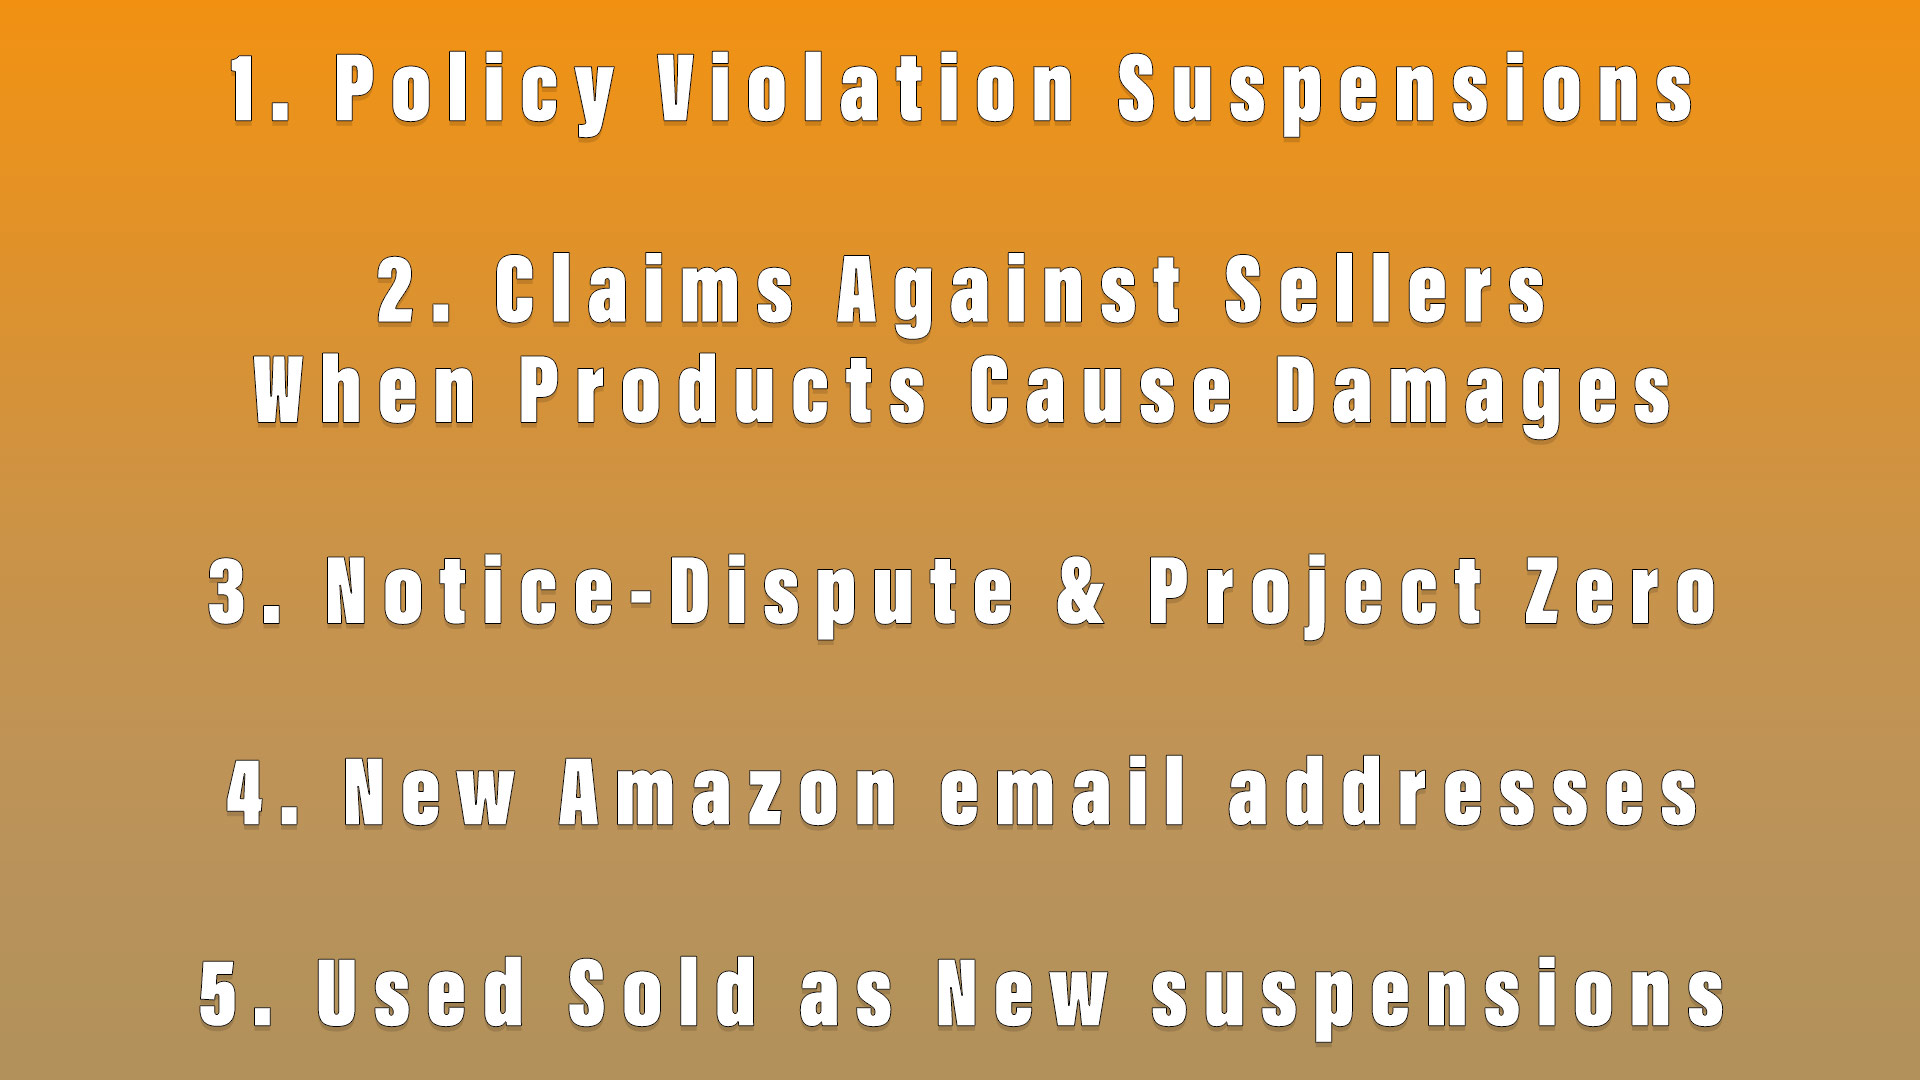 Amazon News: Policy Violation Suspensions, Claims Against Sellers when Products Cause Damages, Notice-Dispute & Project Zero, New Amazon email addresses, Increase in Used Sold as New suspensions